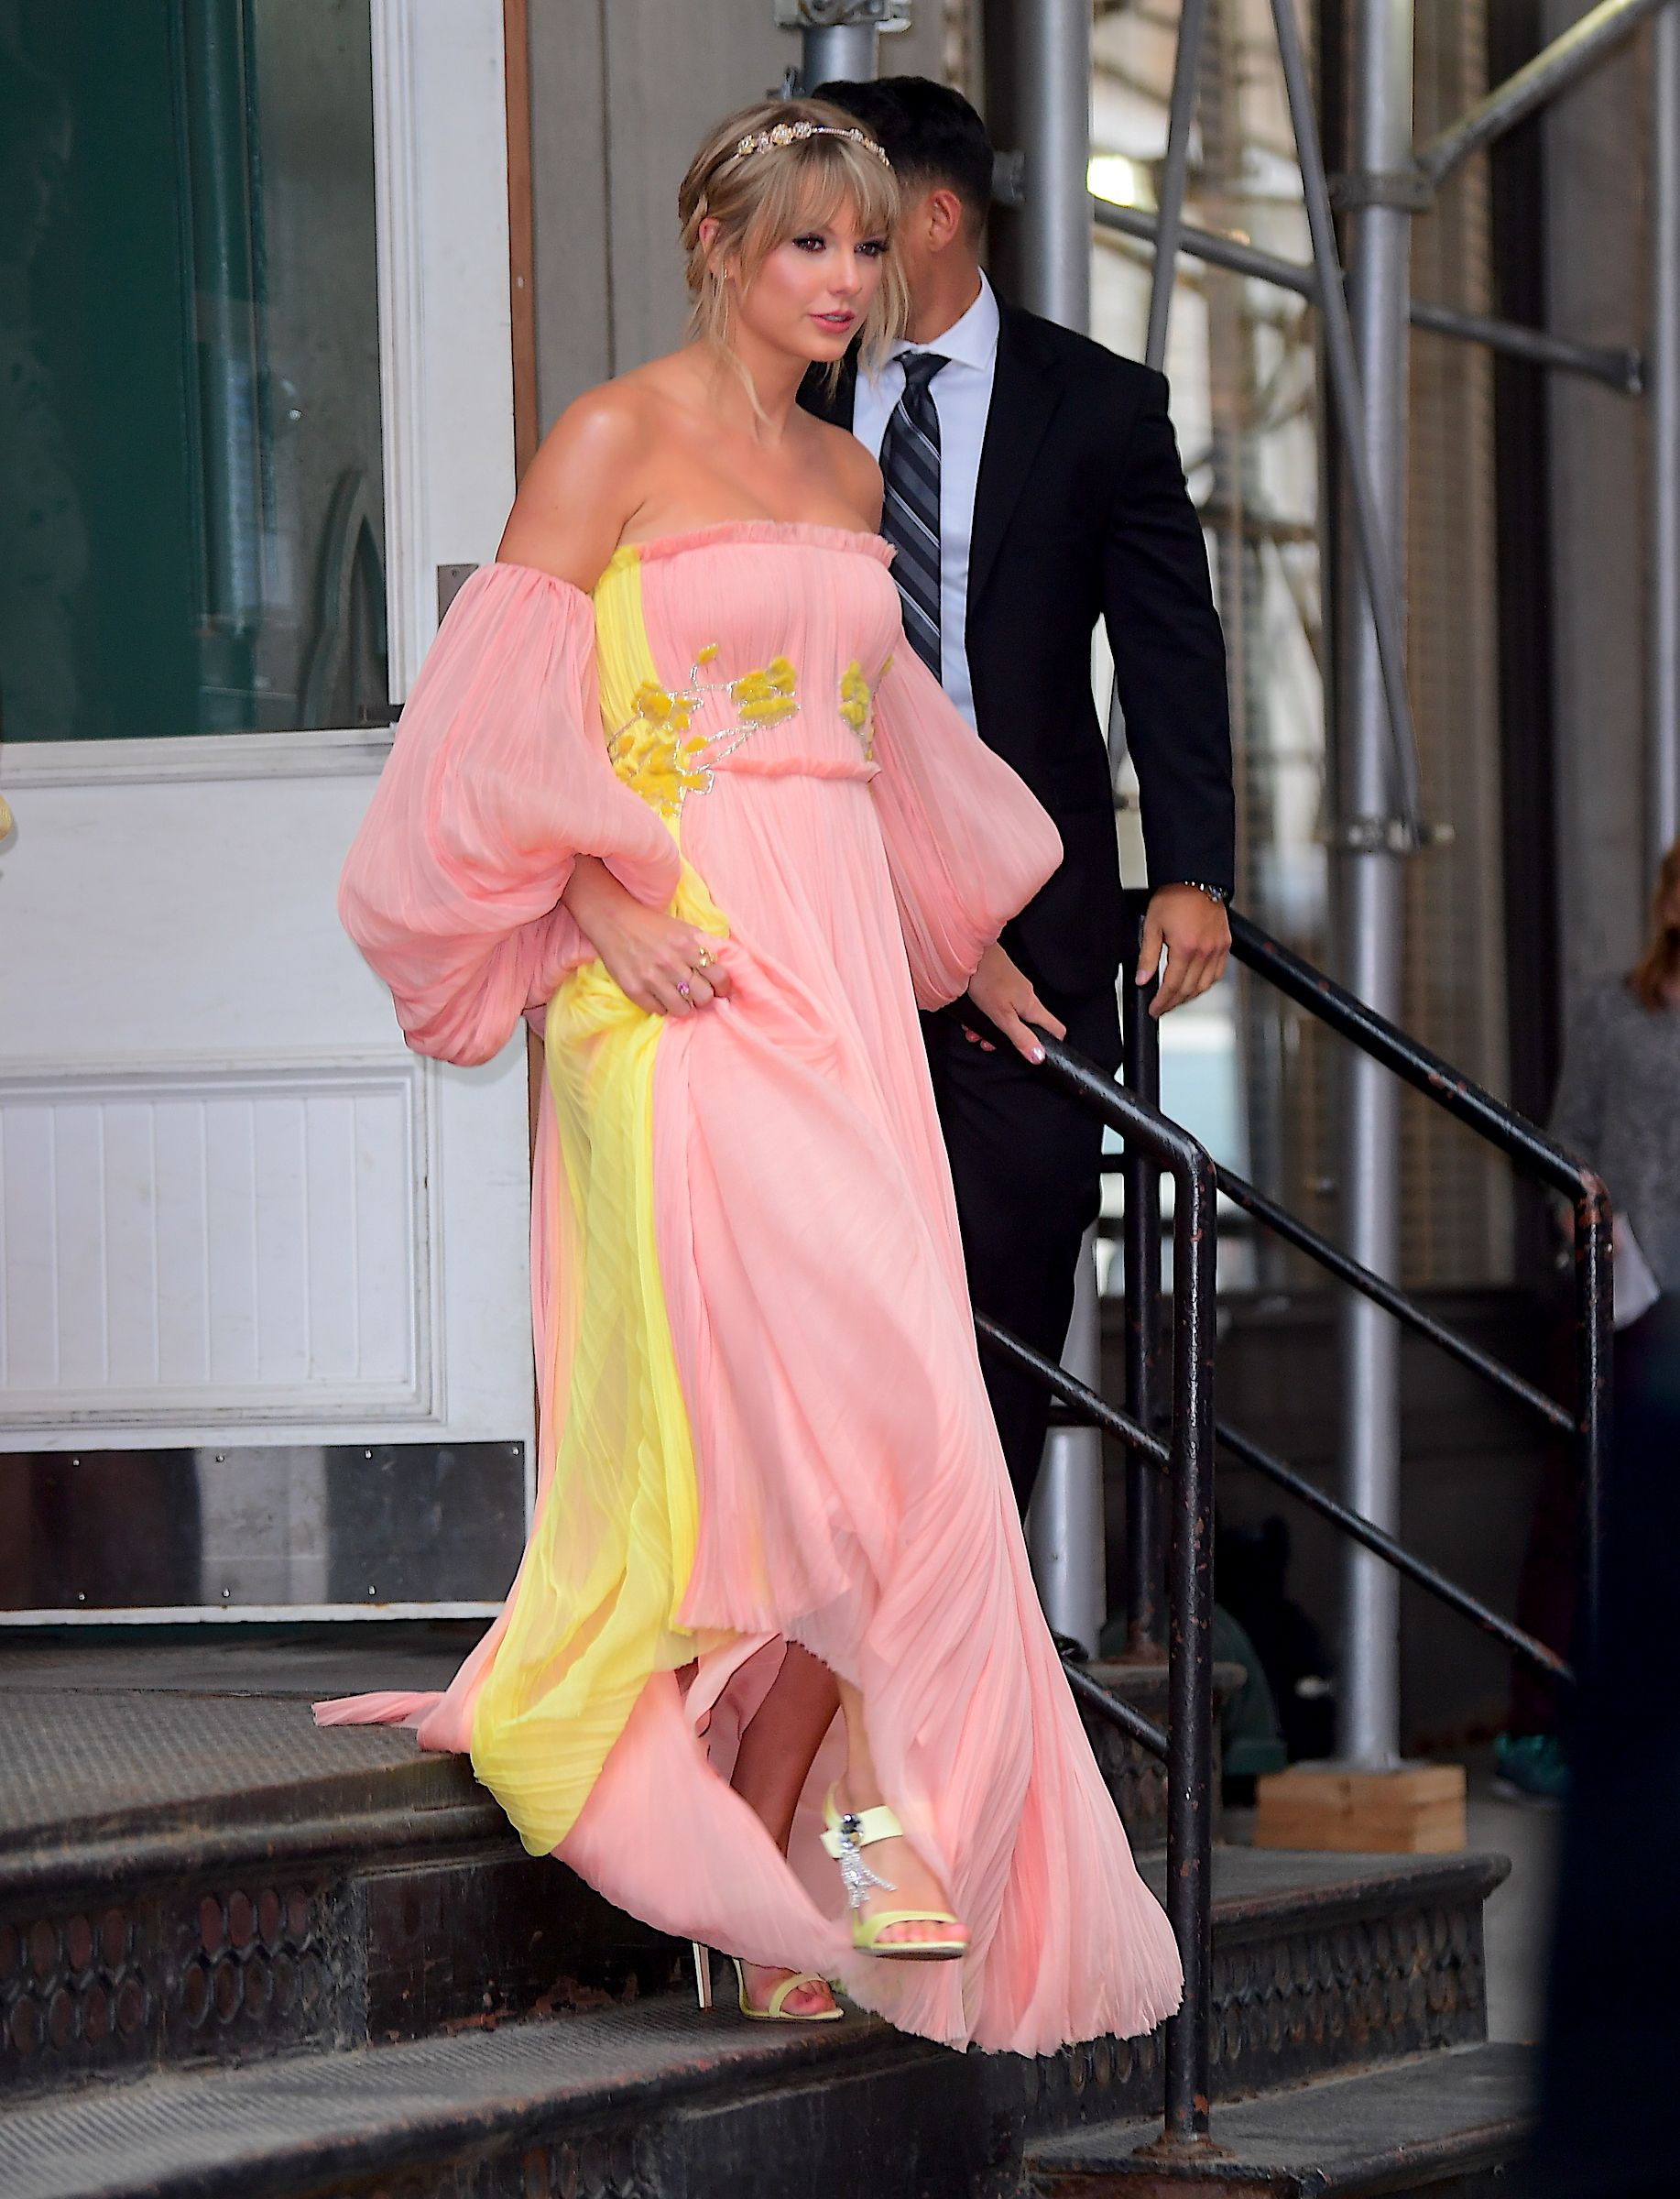 Taylor Swift Wore the Ultimate J. Mendel Pastel Princess Dress to Perform at Time 100 Gala